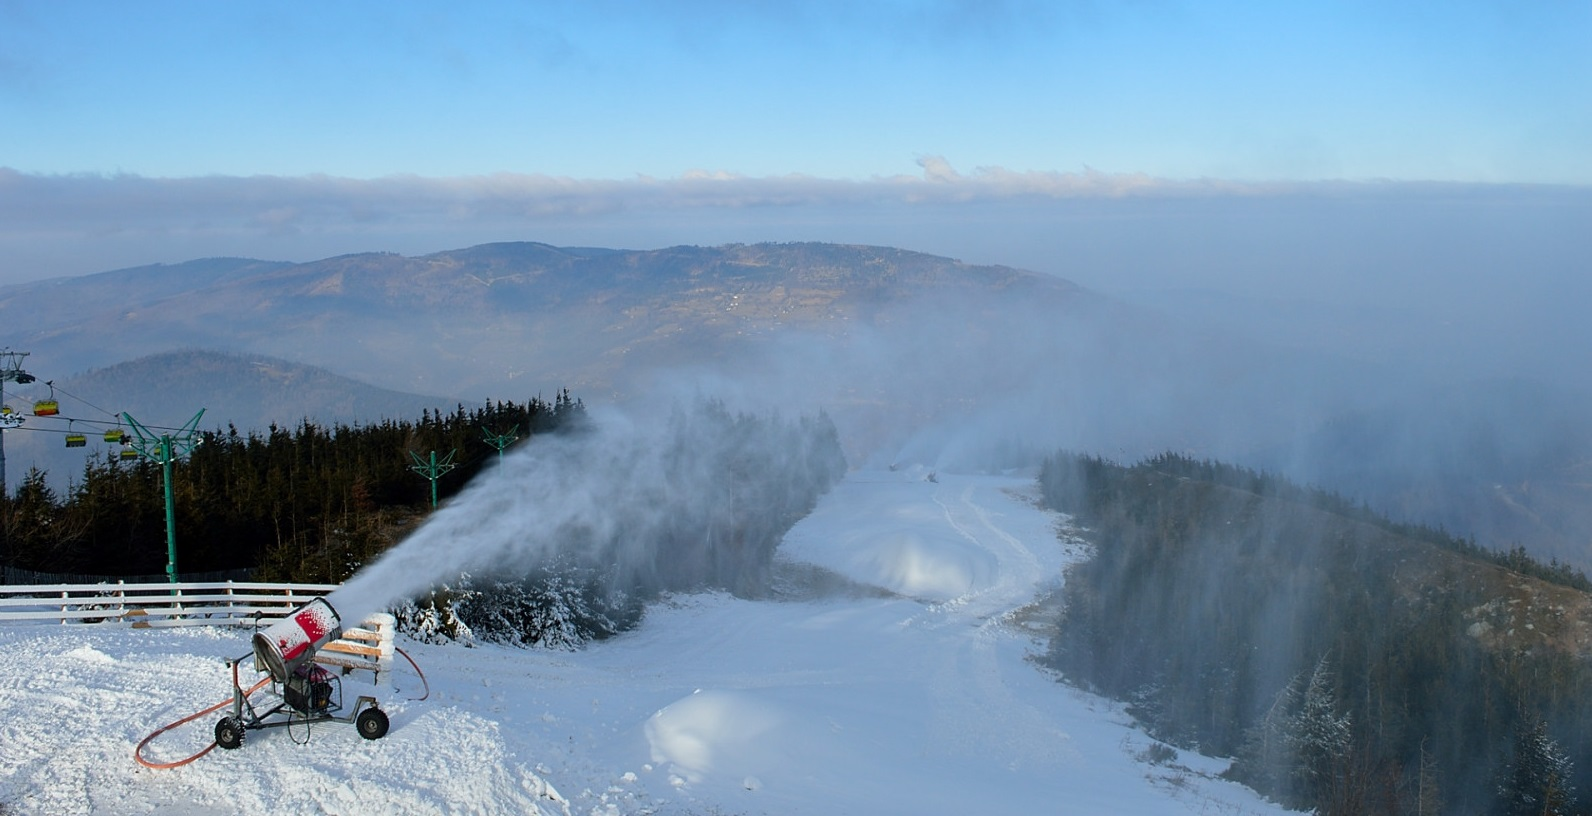 Looking for winter on Skrzyczne – beginning of the New Year up in the mountains